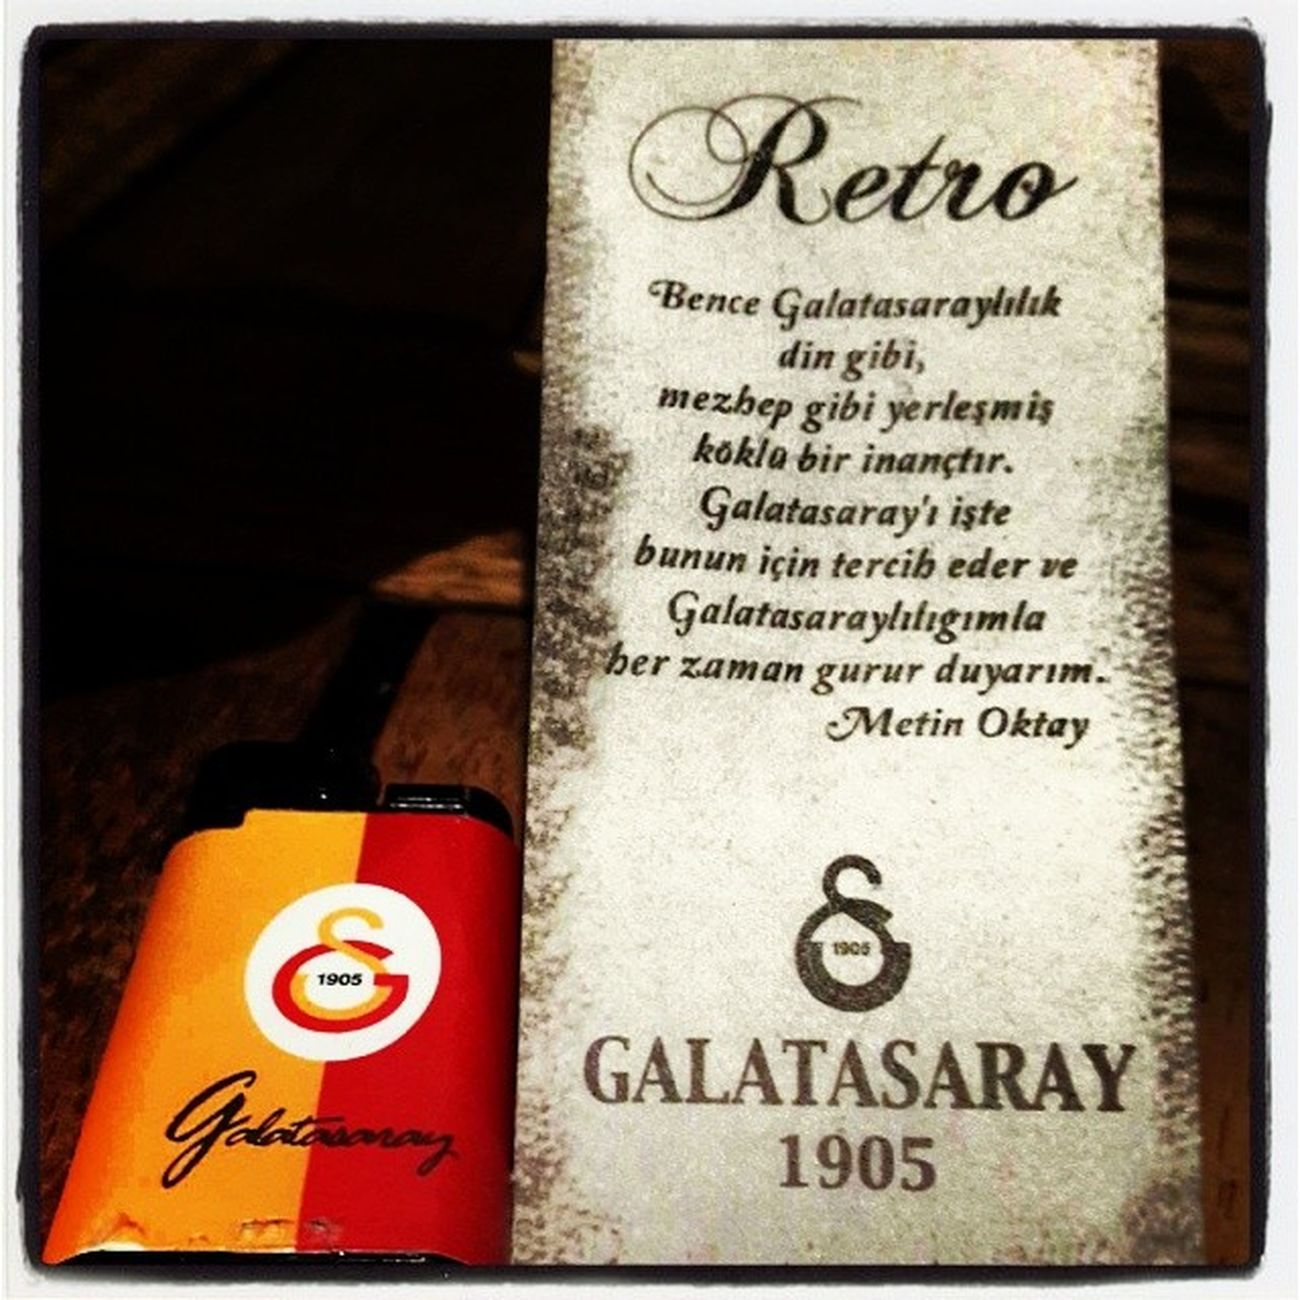 GalataSaray Cimbom Cimbombom @dude7811 @17by @selcuk8official @_felipemeloo_ @sneijder10official @